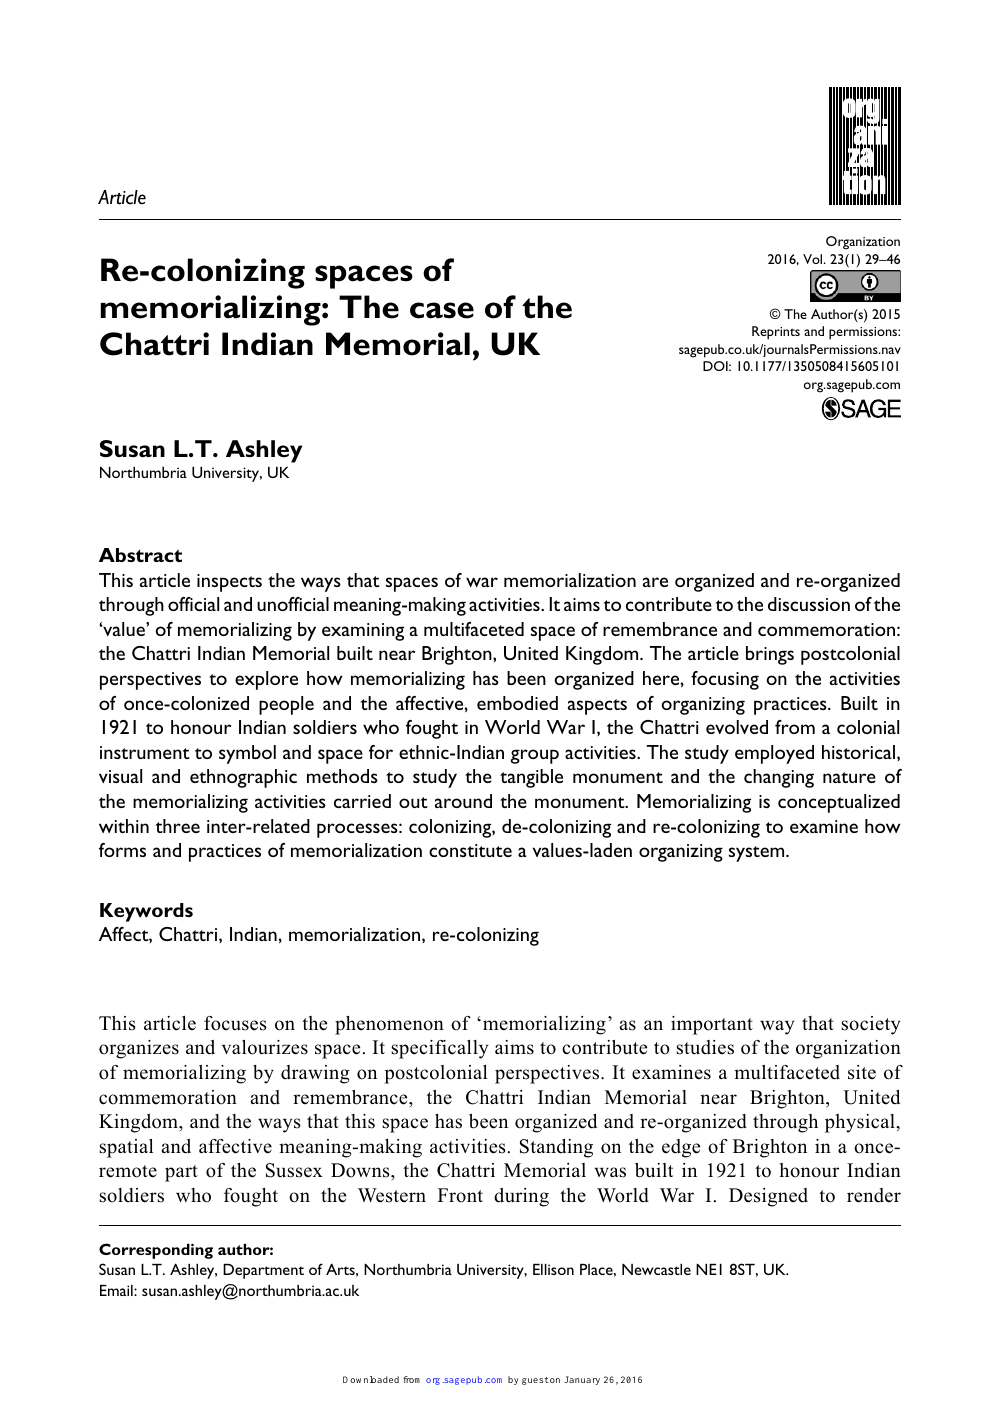 Re-colonizing spaces of memorializing: The case of the